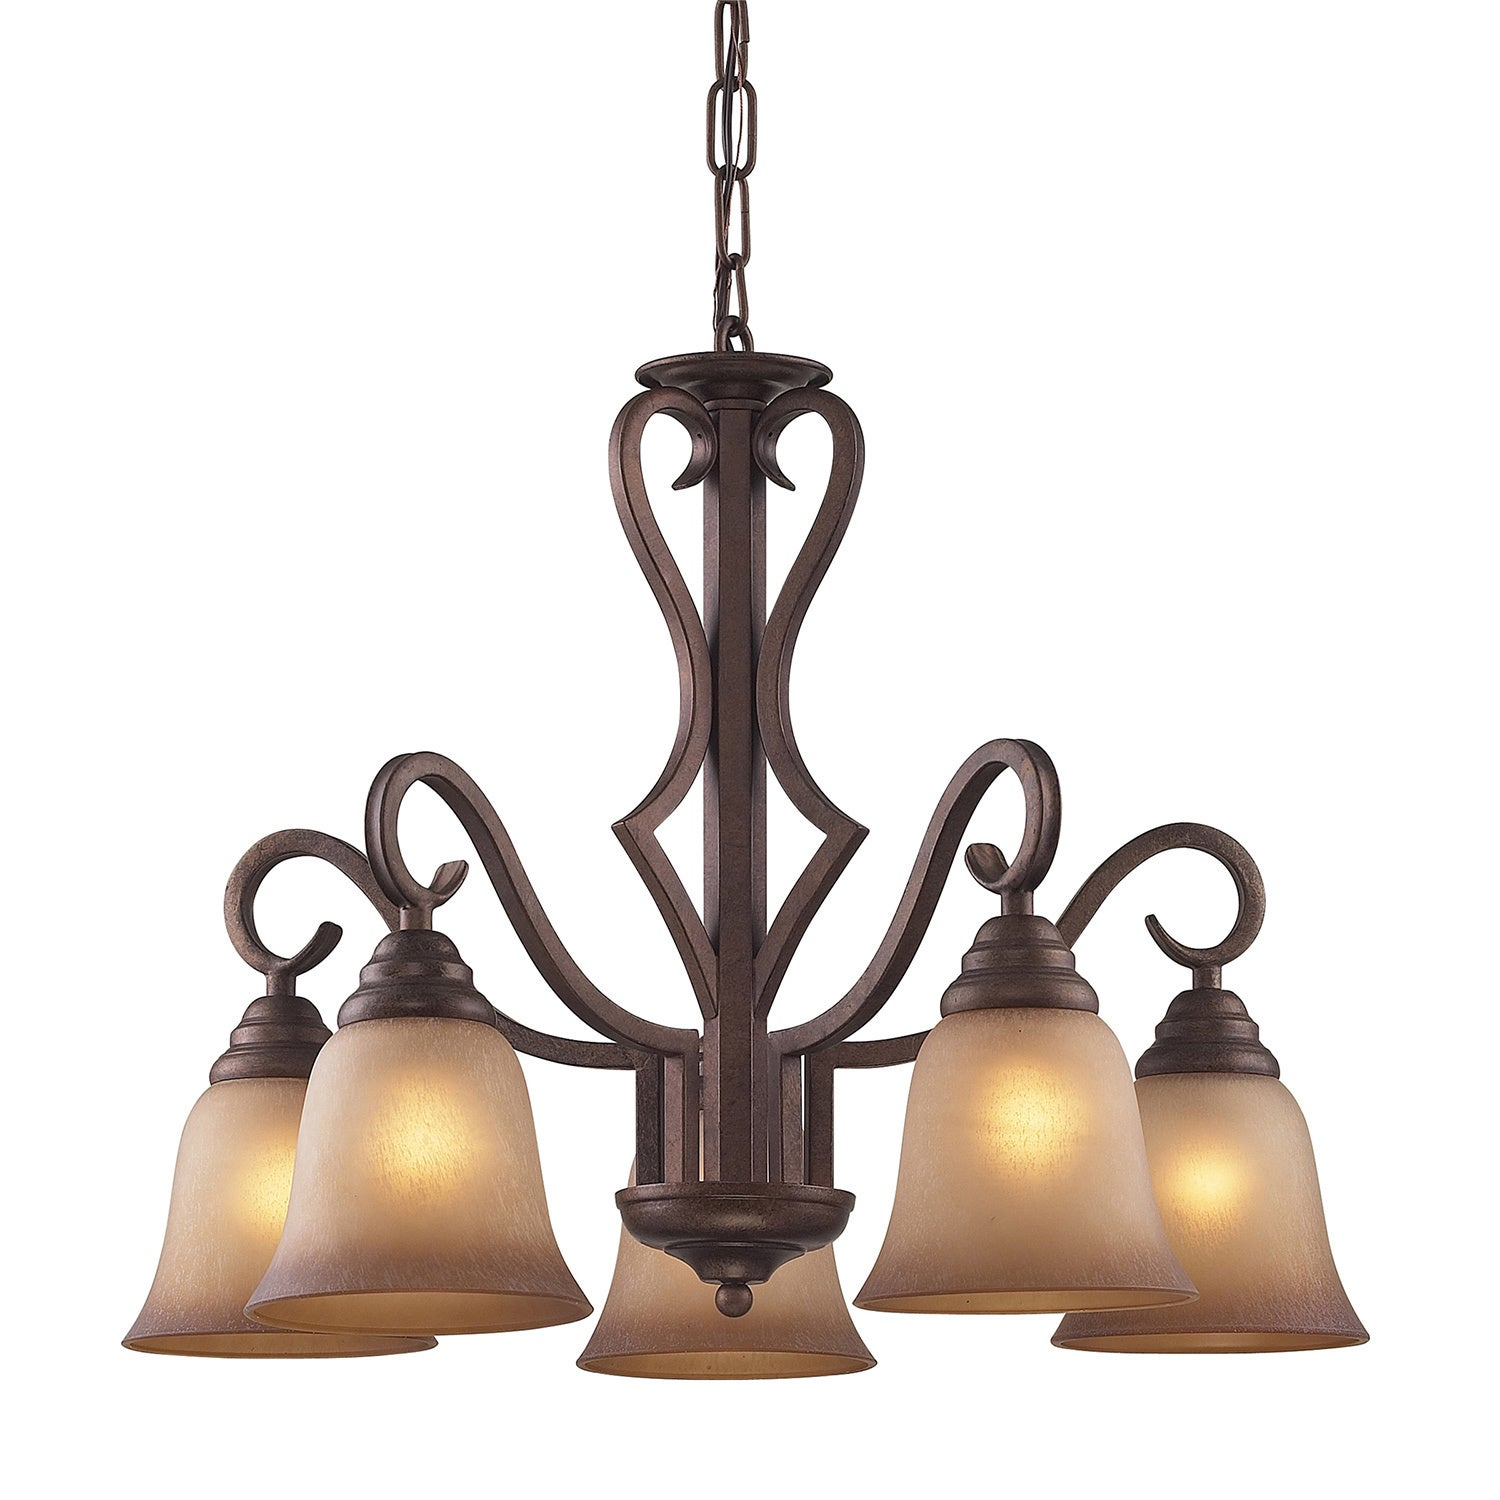 Lawrenceville 5 light Mocha Antique Amber Glass Chandelier Free